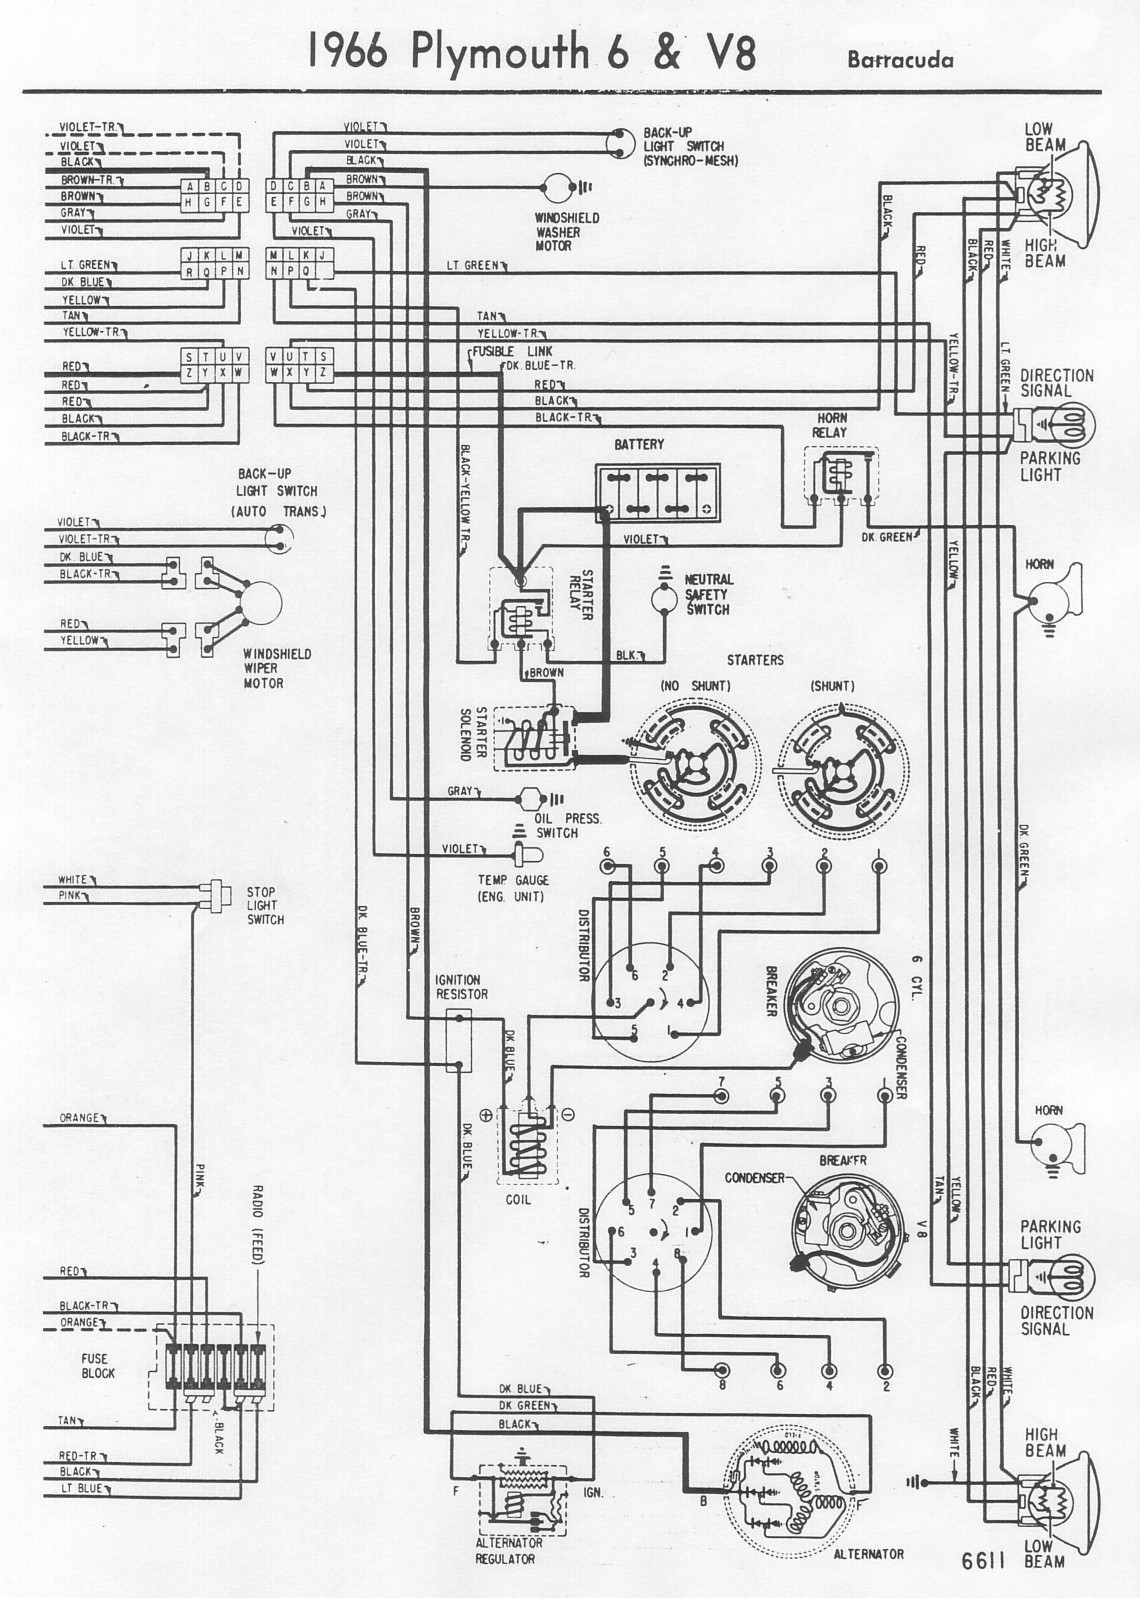 68 Valiant Wiring Diagram Schematics 1952 Plymouth Cranbrook 1967 Fury Schematic Electrical Diagrams 66 1965